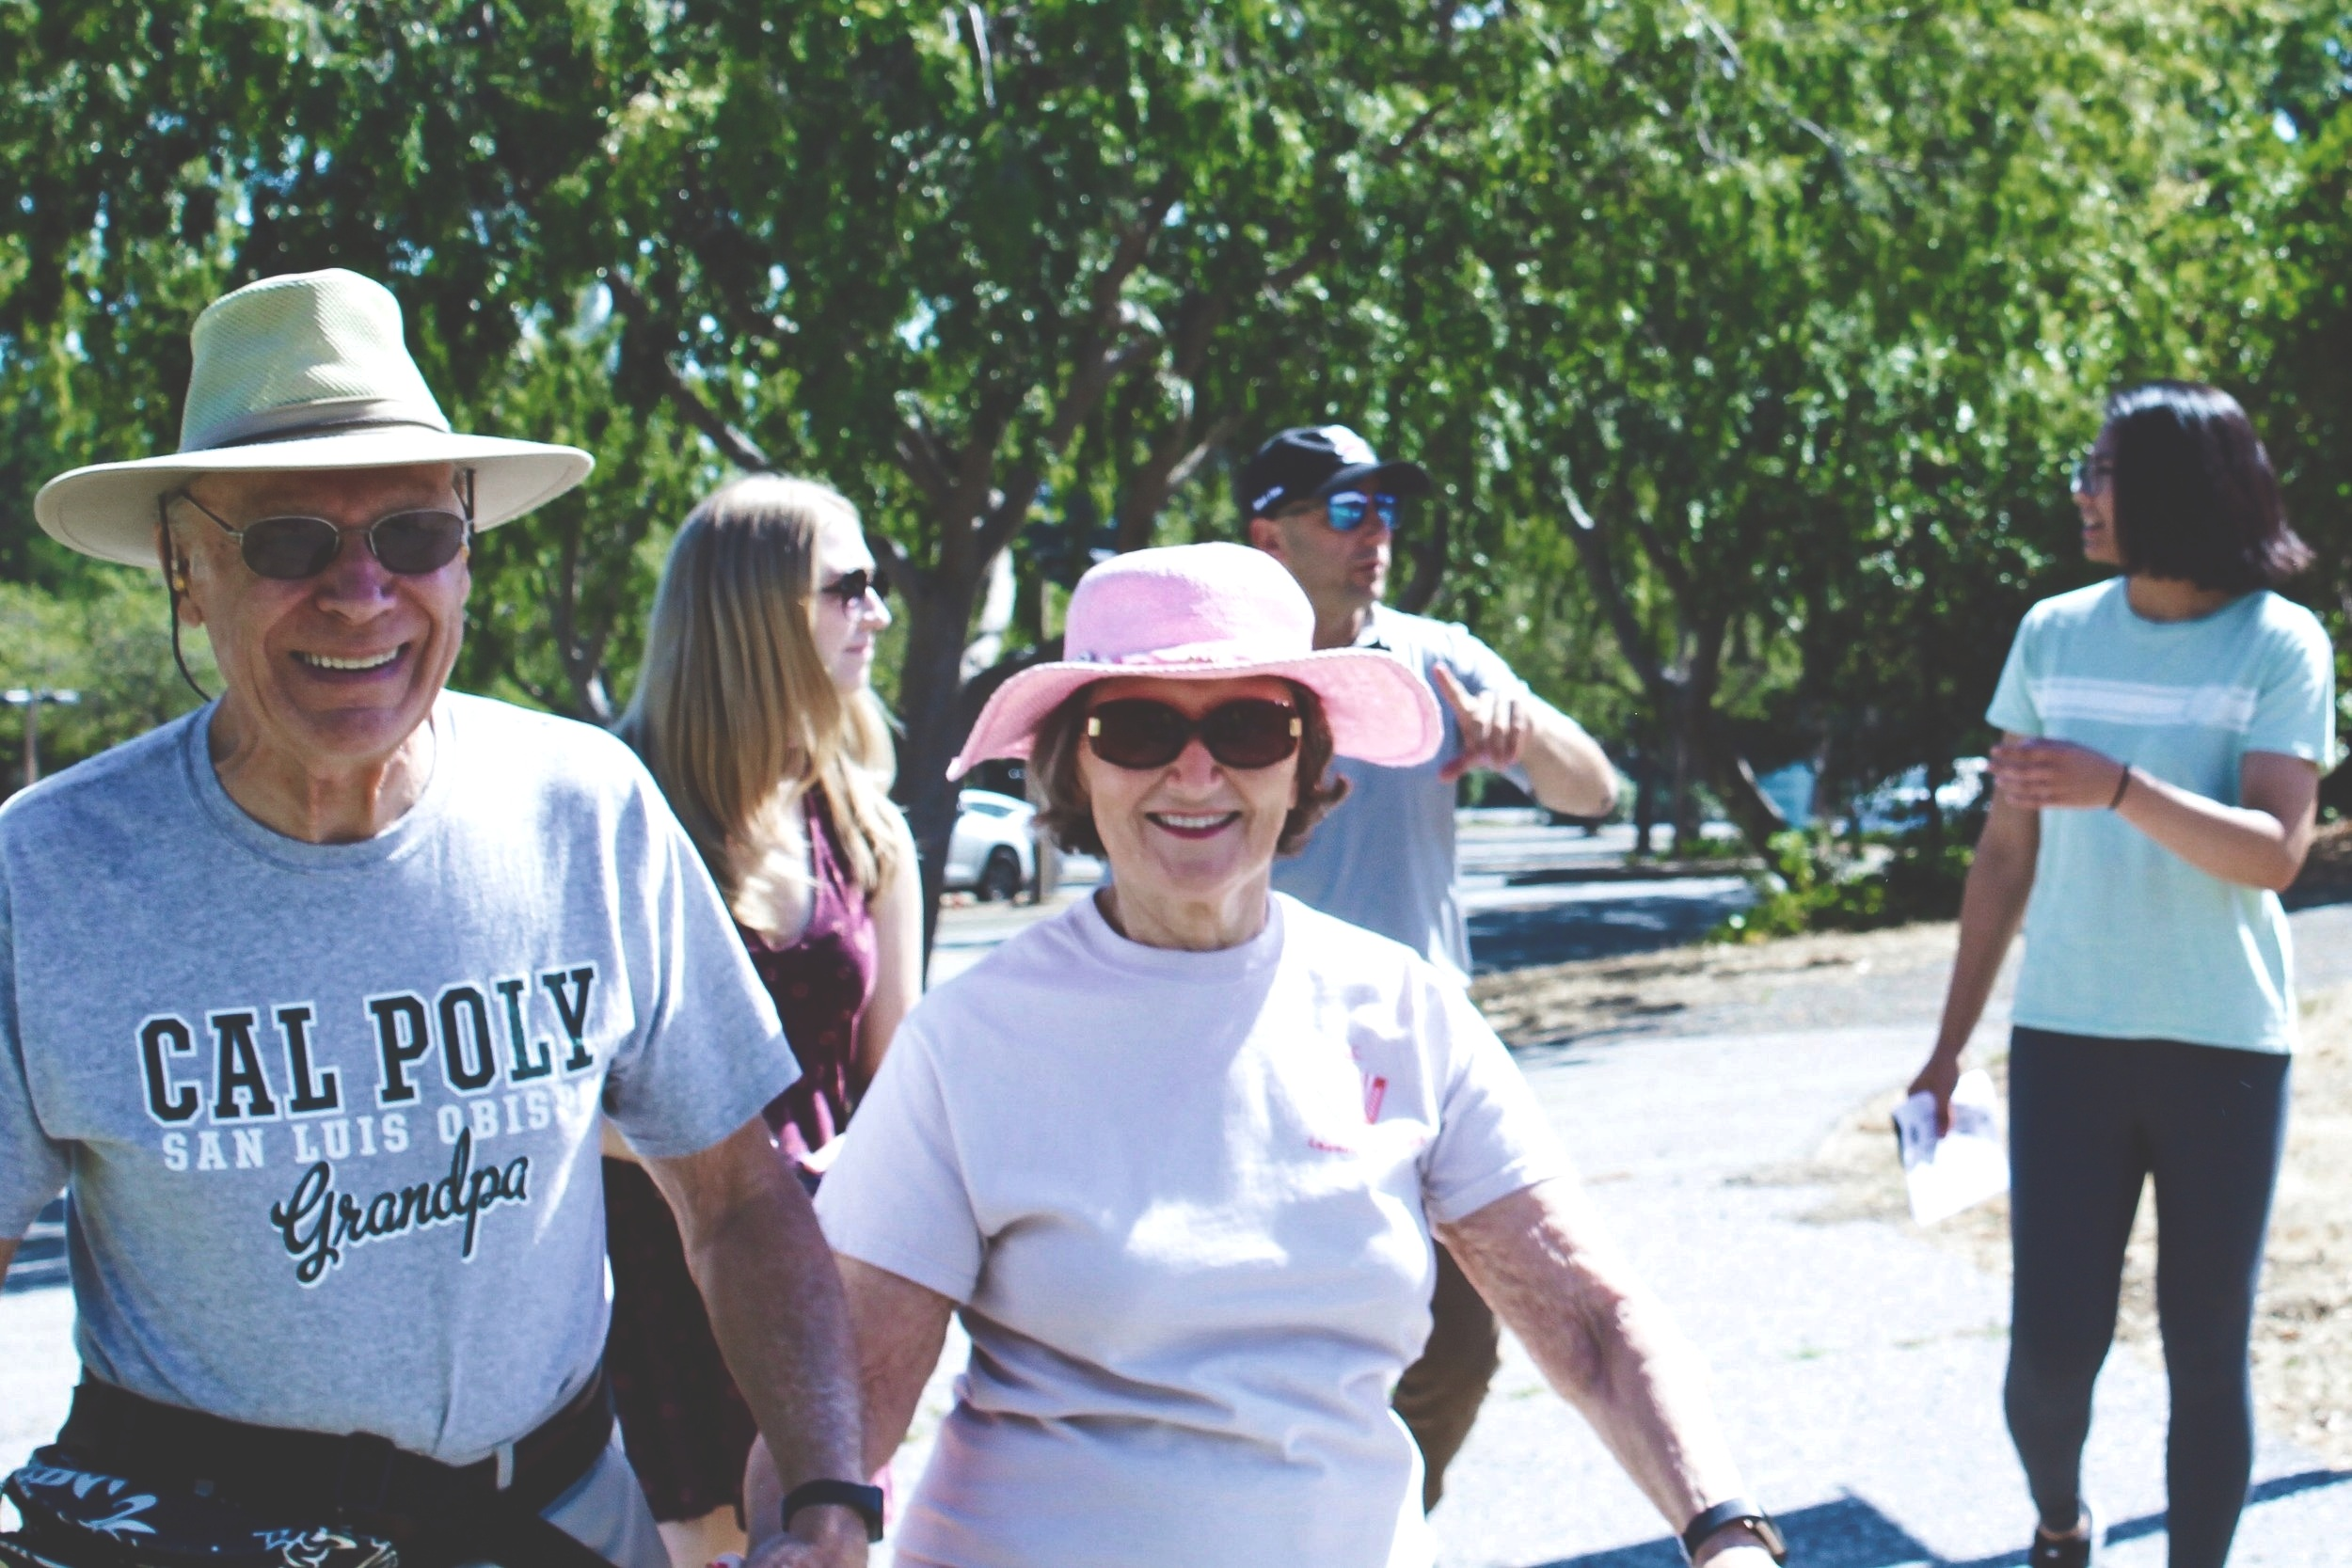 SASCC was founded in 1979 on the idea that a community should have an active, dedicated, and capable team assessing and serving the needs of local people as they make their way through adult life.